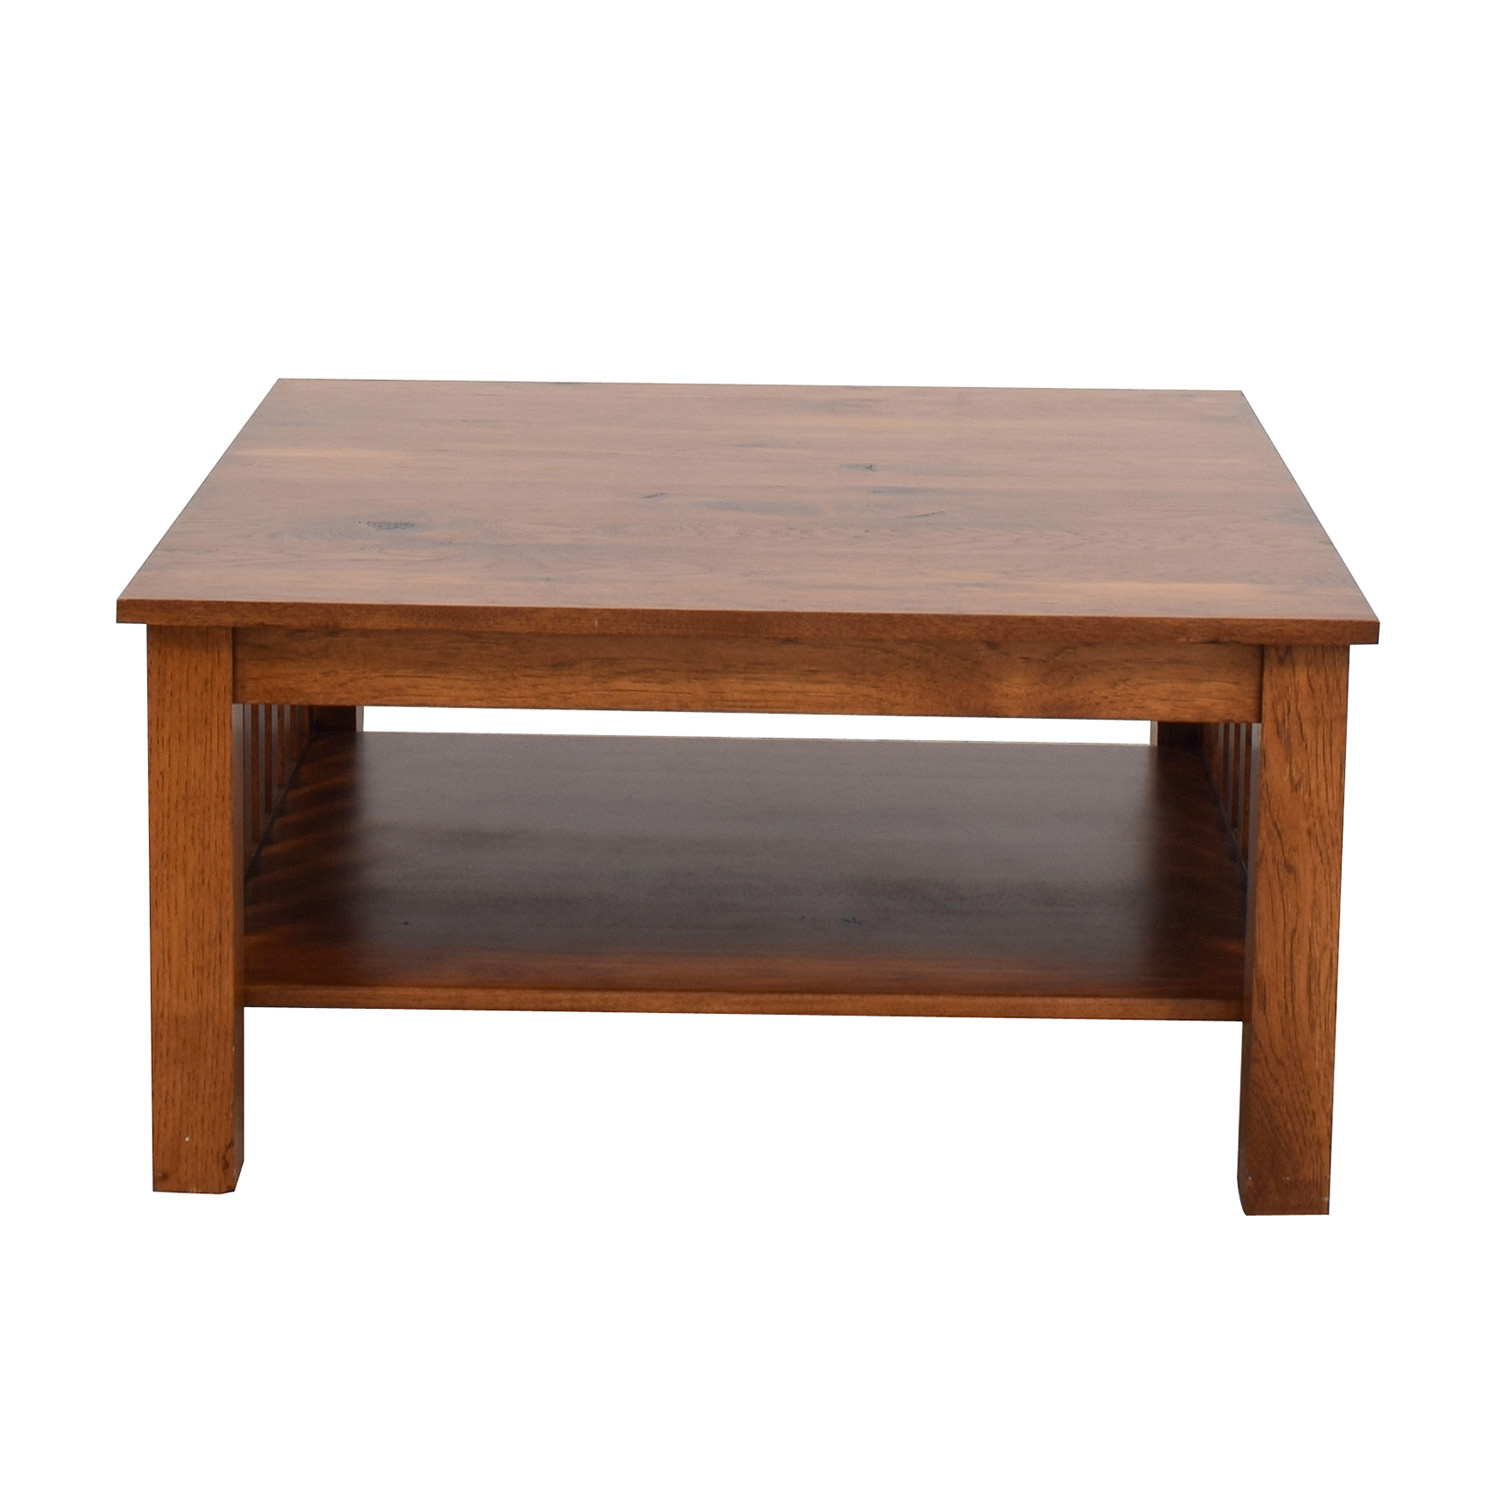 DutchCrafters DutchCrafters Square Coffee Table nj